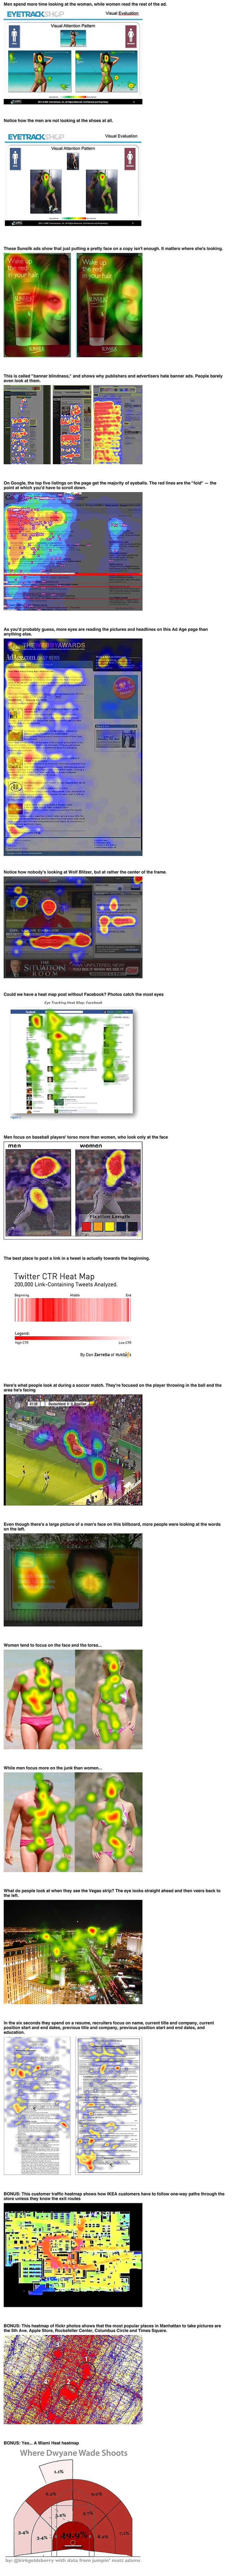 16 Heatmaps That Reveal Exactly Where People Look.